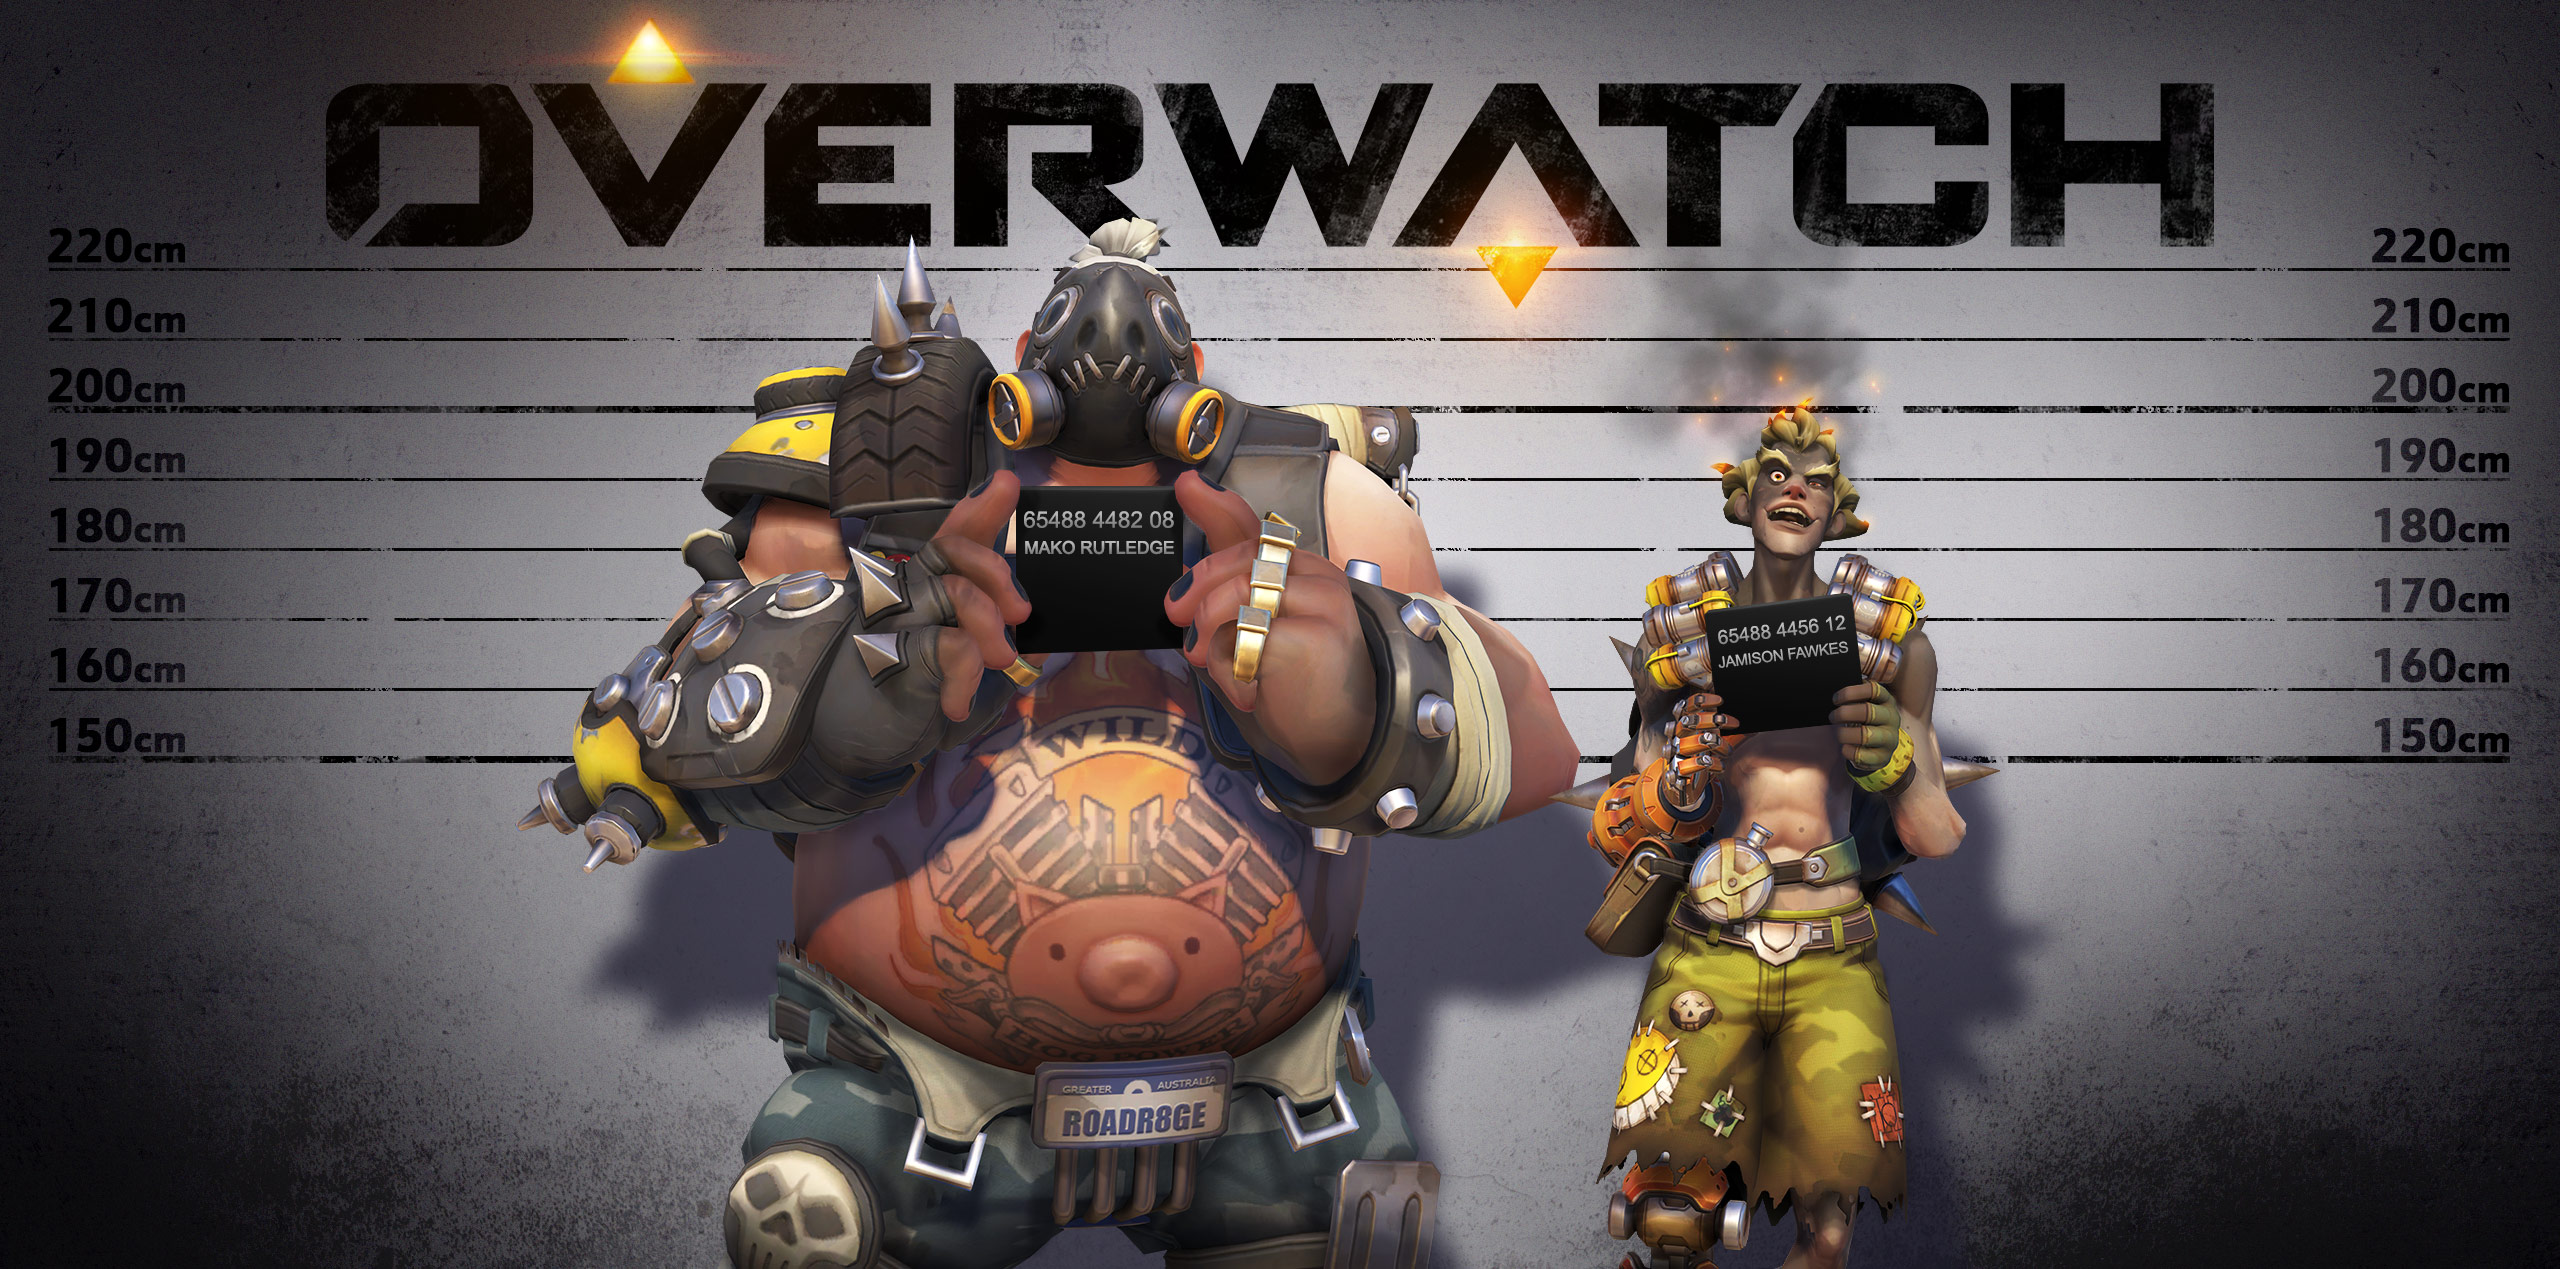 overwatch wallpapers 1920x1080, PC, MAC, LAPTOP,4K